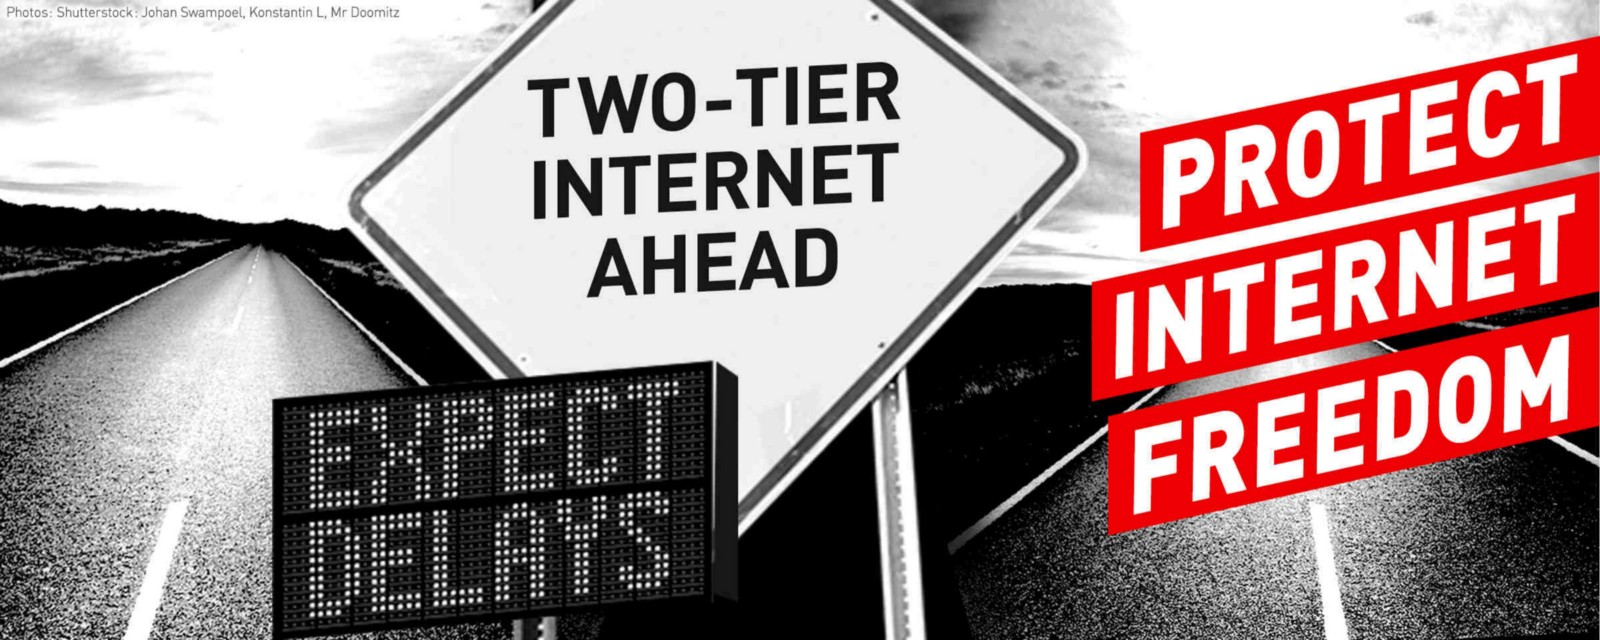 Fcc Net Neutrality Portugal >> RALLY's Hot Take On Net Neutrality and the Lifecycle of ...